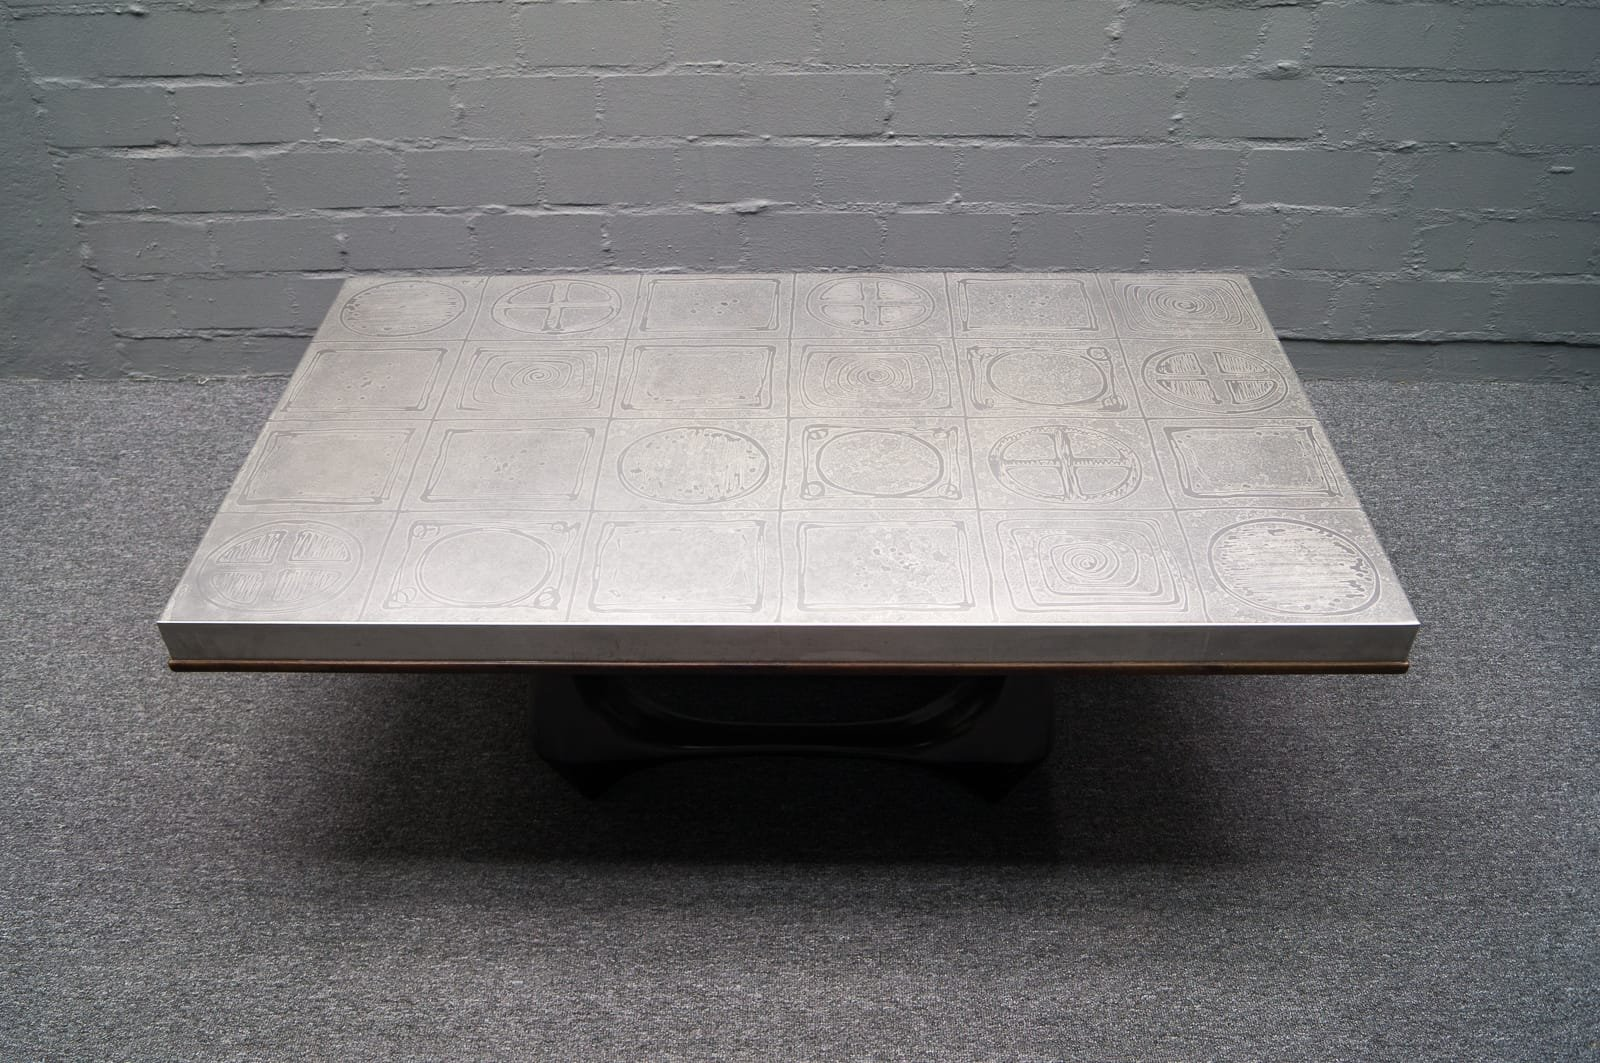 Good Aluminum Coffee Table By Heinz Lilienthal, 1960s 3. Previous